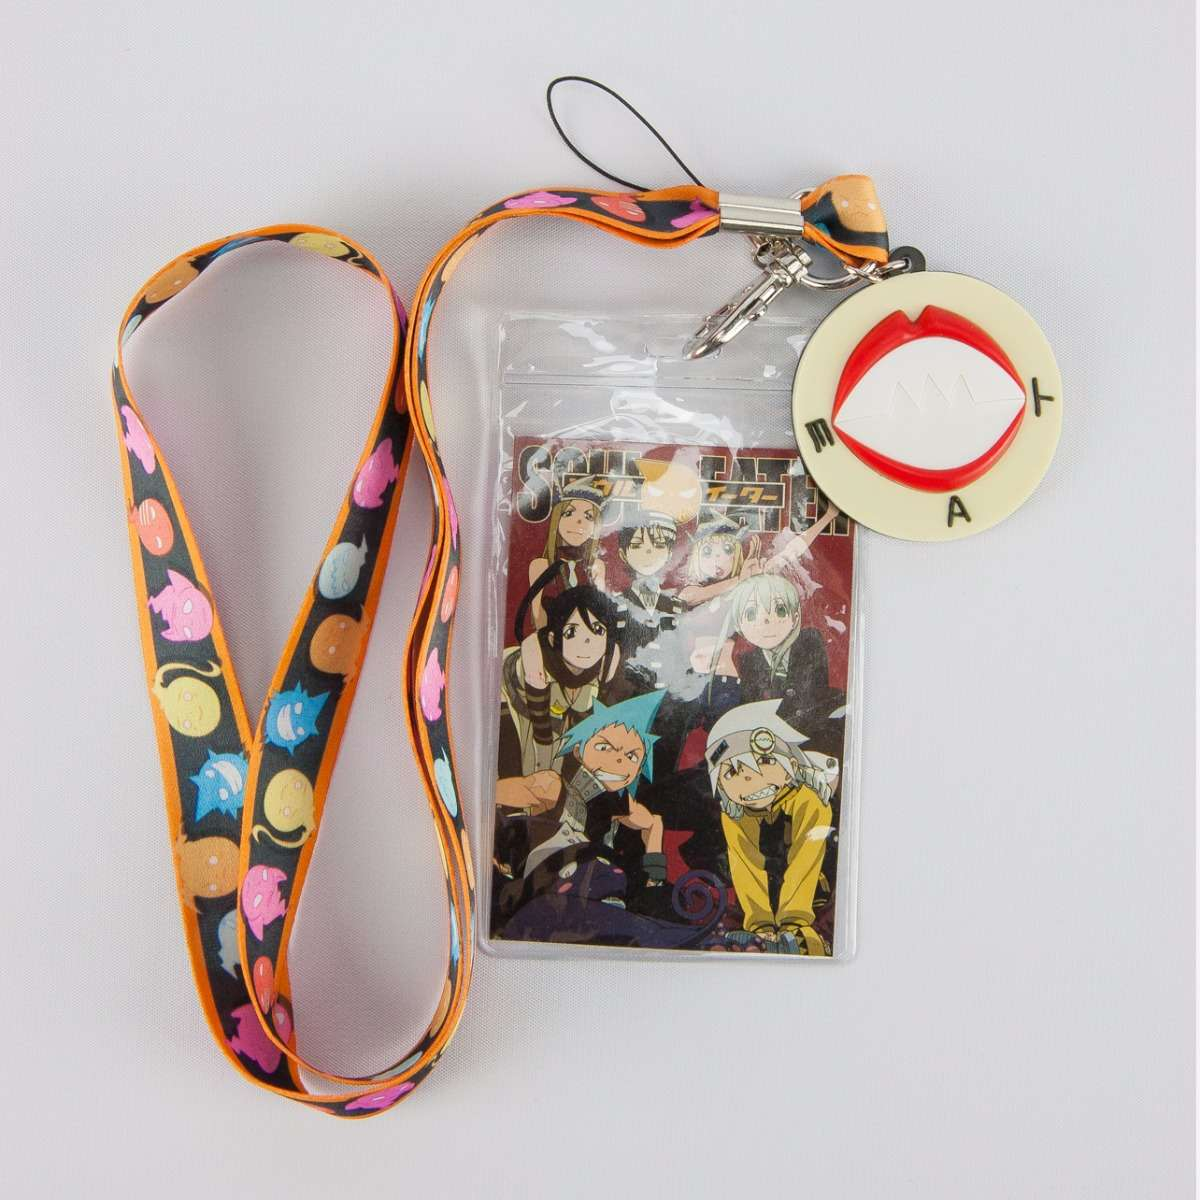 Group Cellphone Strap + Lanyard Accessories